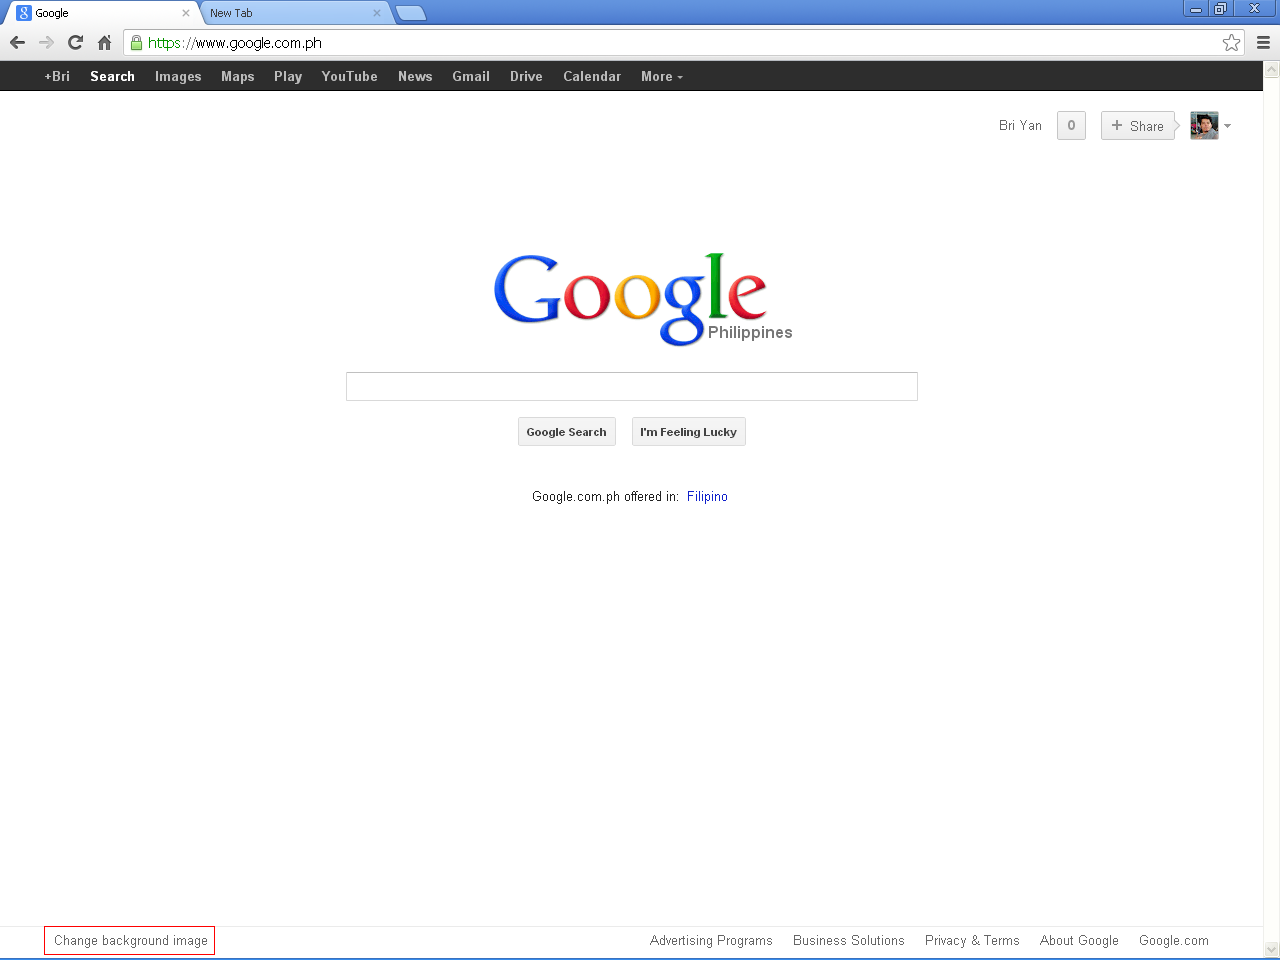 How To Change Google Browser Background Image - HowToQuick.Net